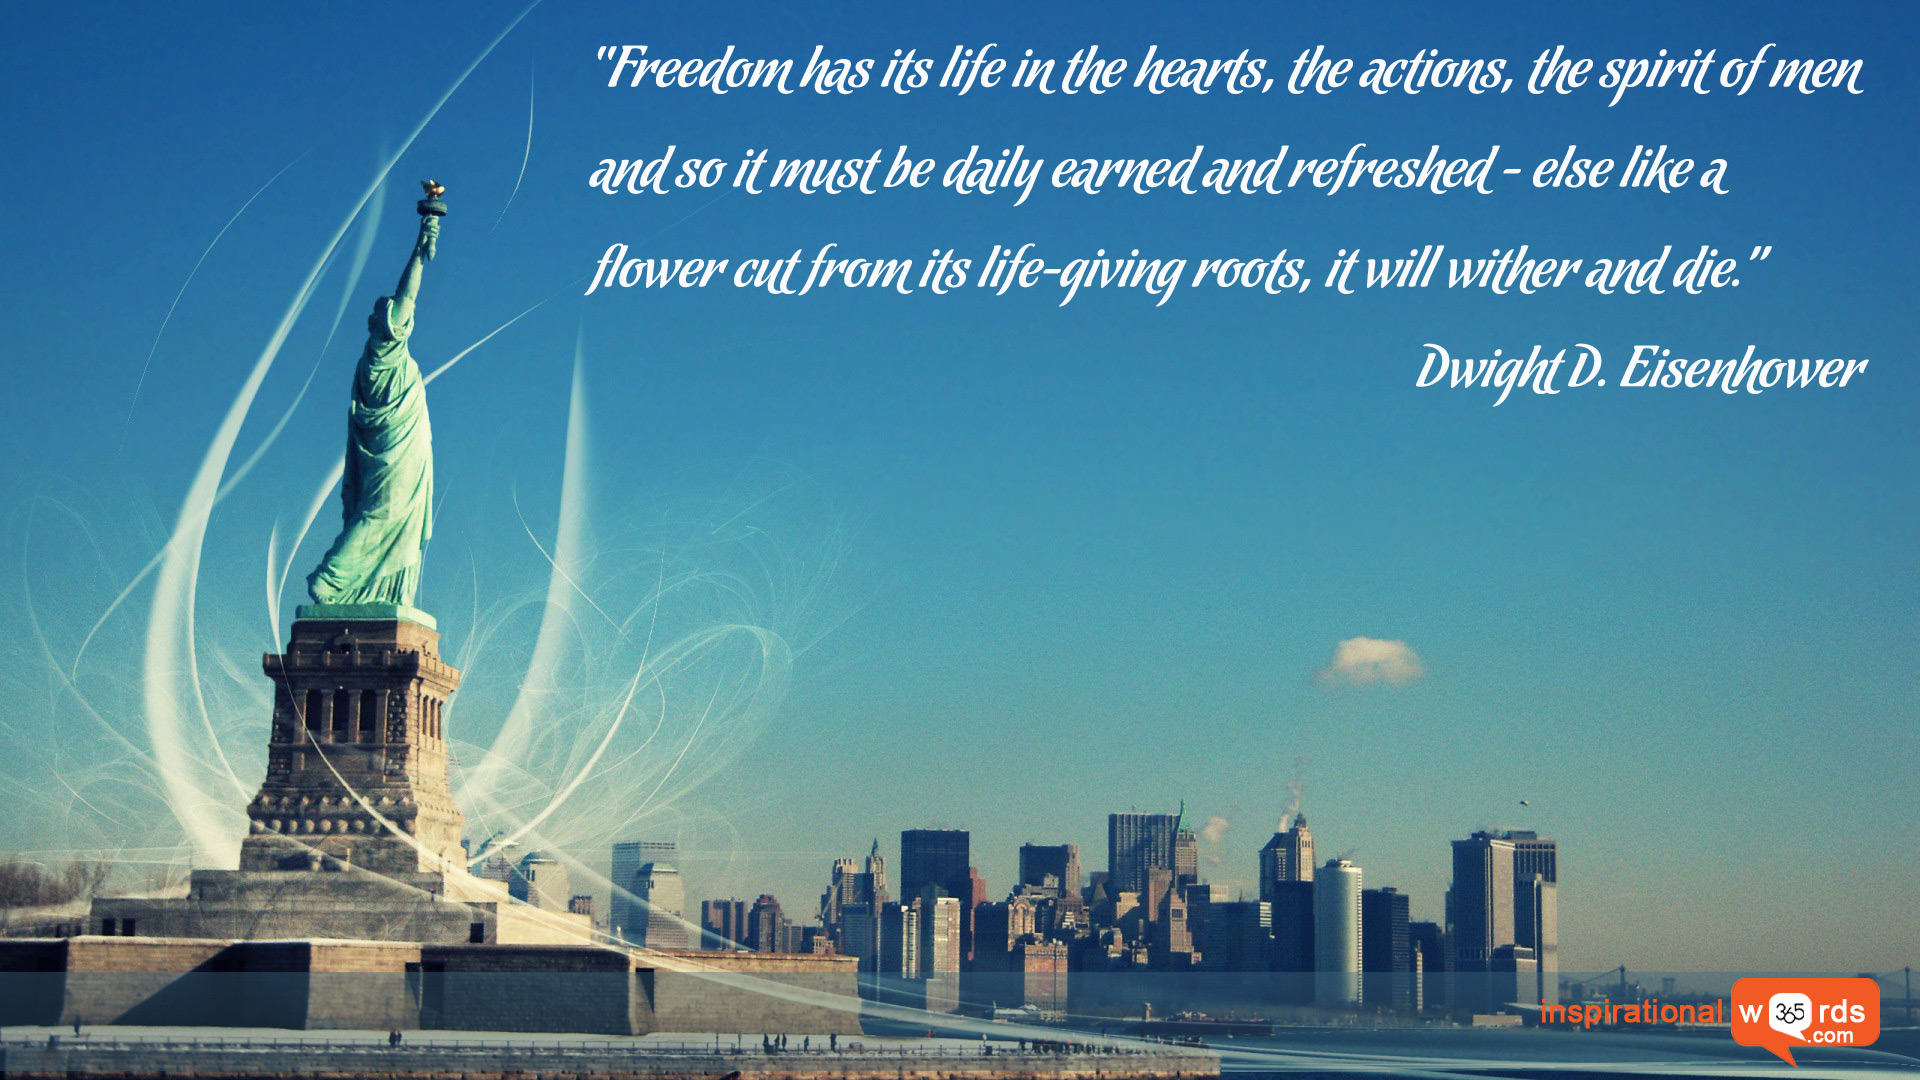 Inspirational Wallpaper Quote by Dwight D. Eisenhower